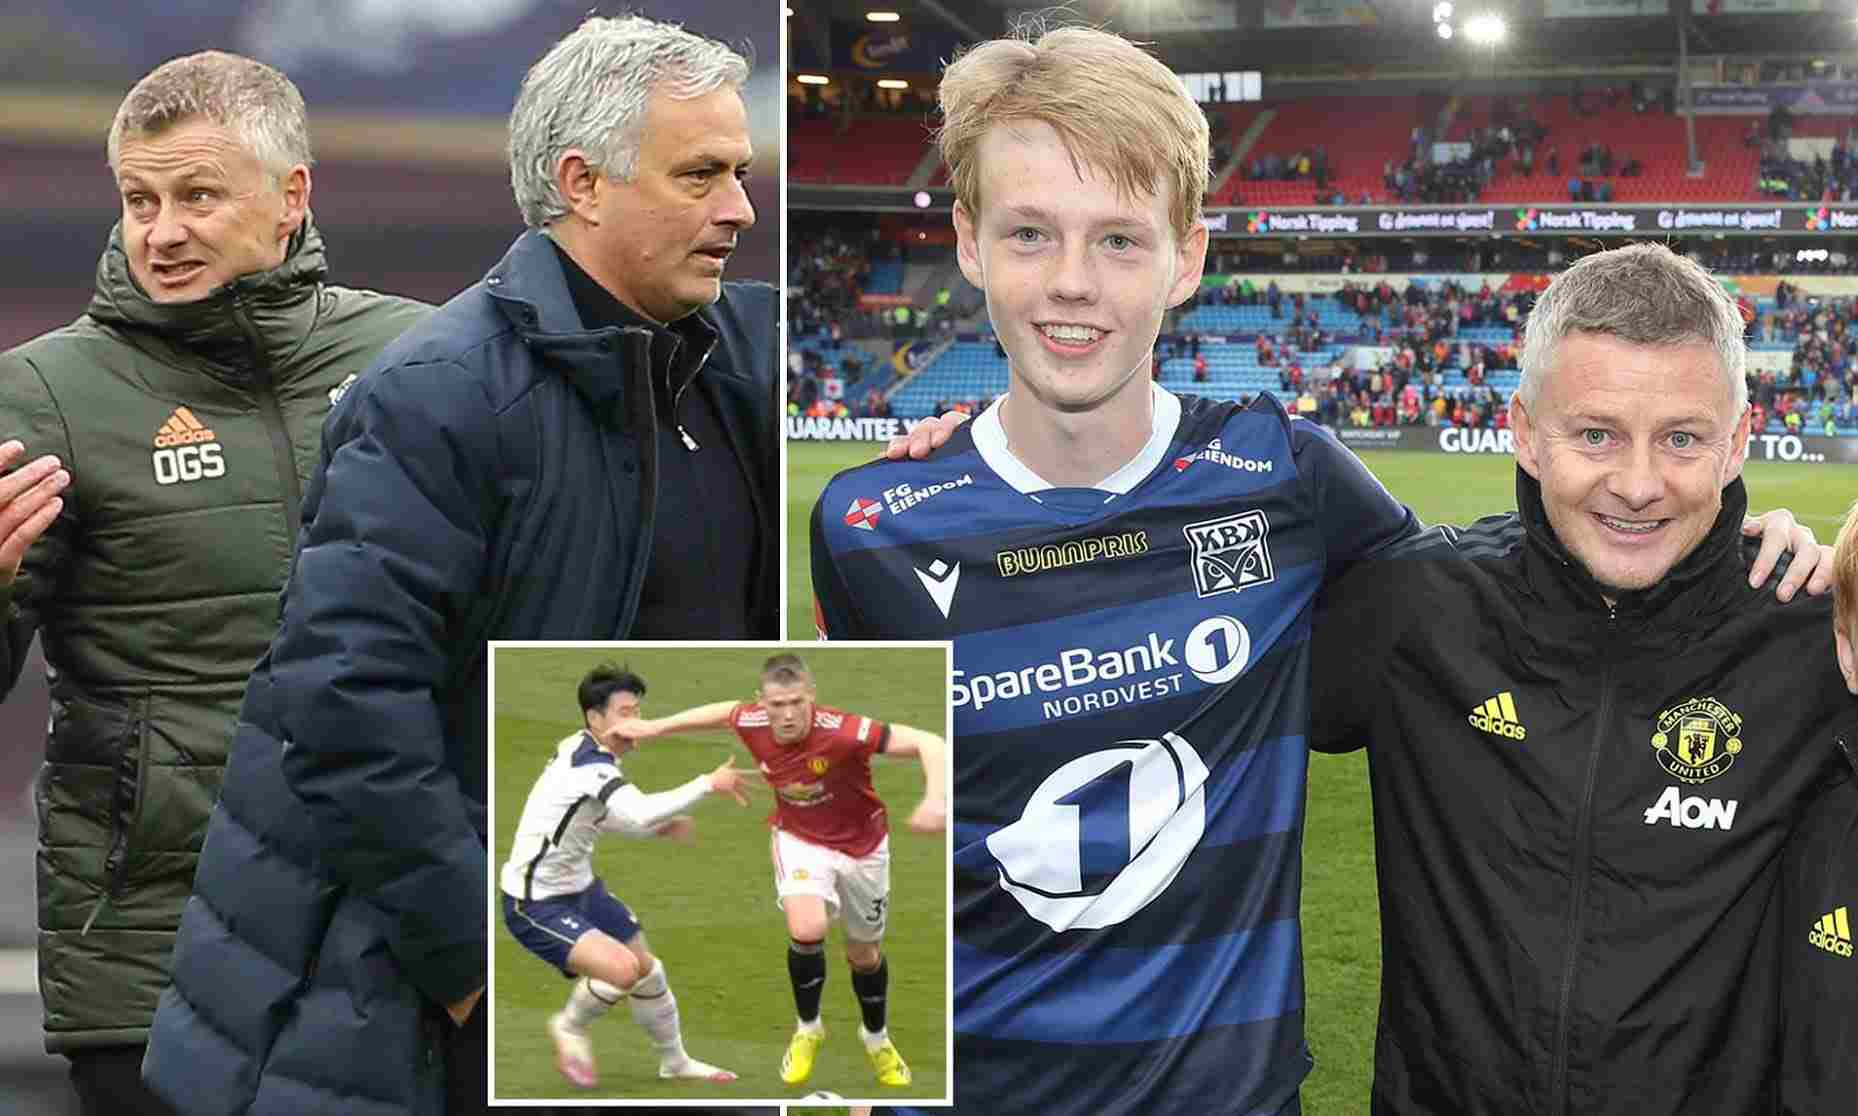 Solskjaer's son takes swipes at Mourinho & Son Heung-min